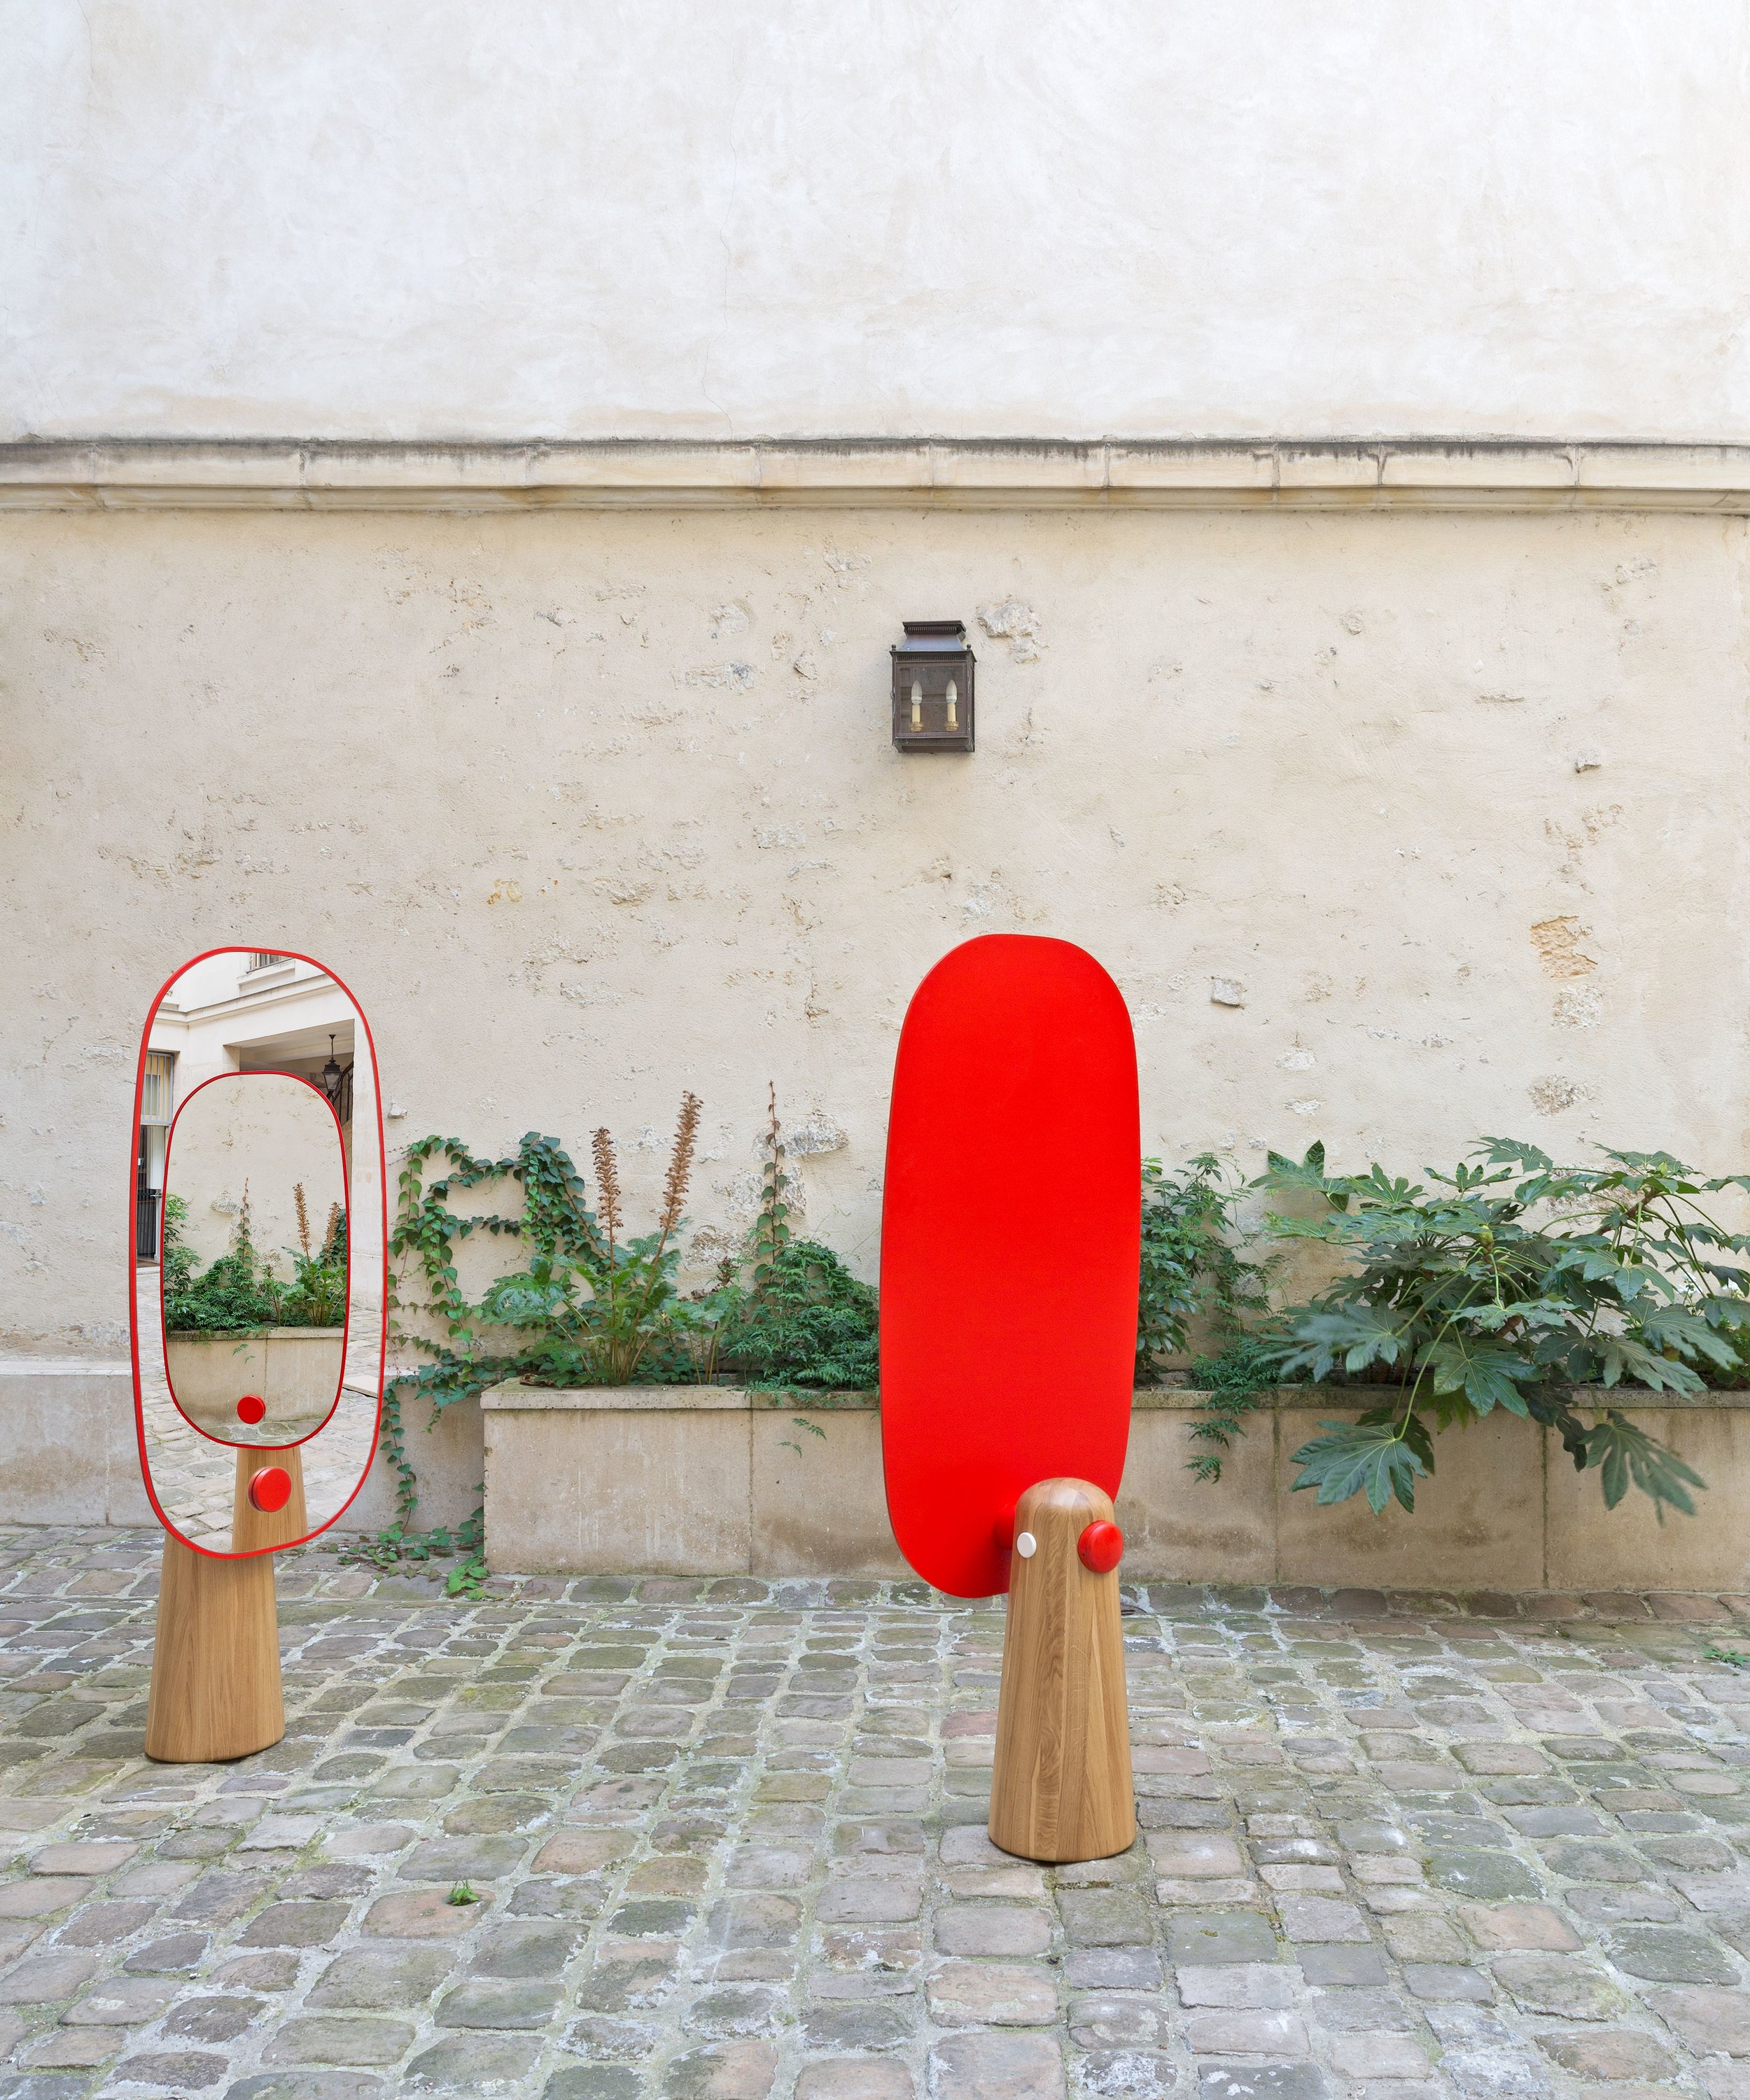 Iconic / Dan Yeffet & Lucie Koldova for La Chance, Human-sized mirror available in different combinations of colors and materials